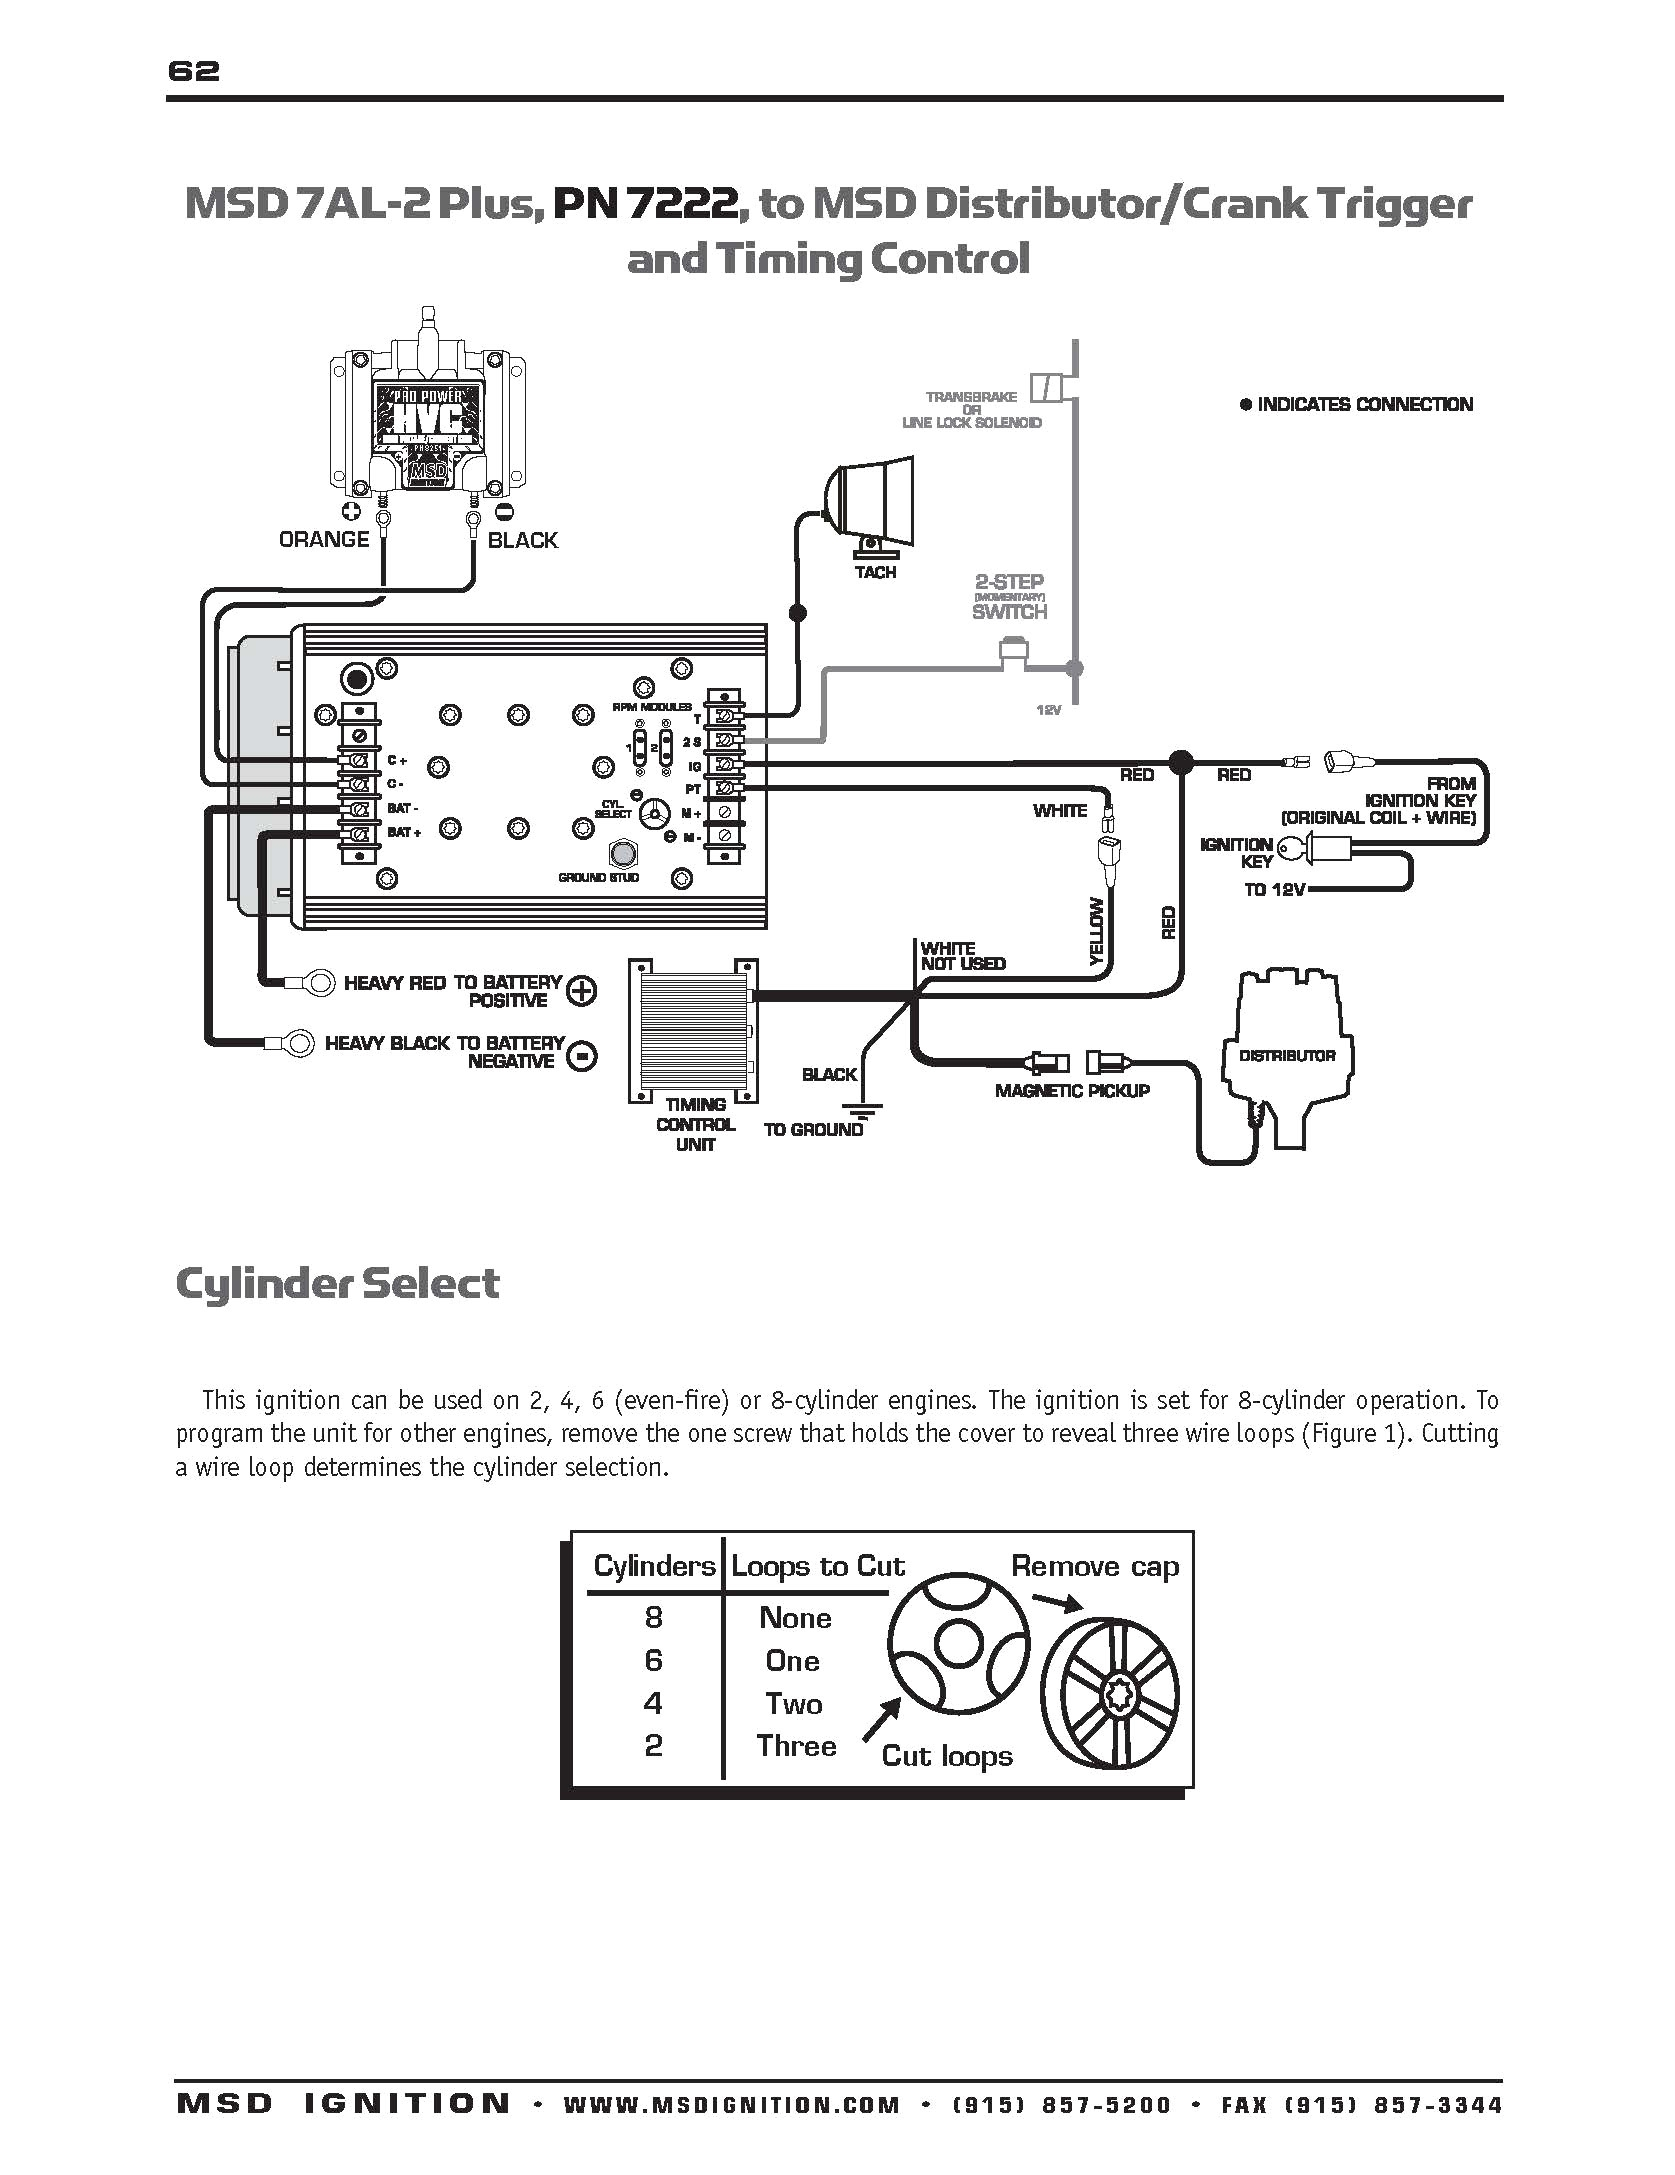 msd ignition wiring diagram dual msd 6al 2 wiring diagram | free wiring diagram